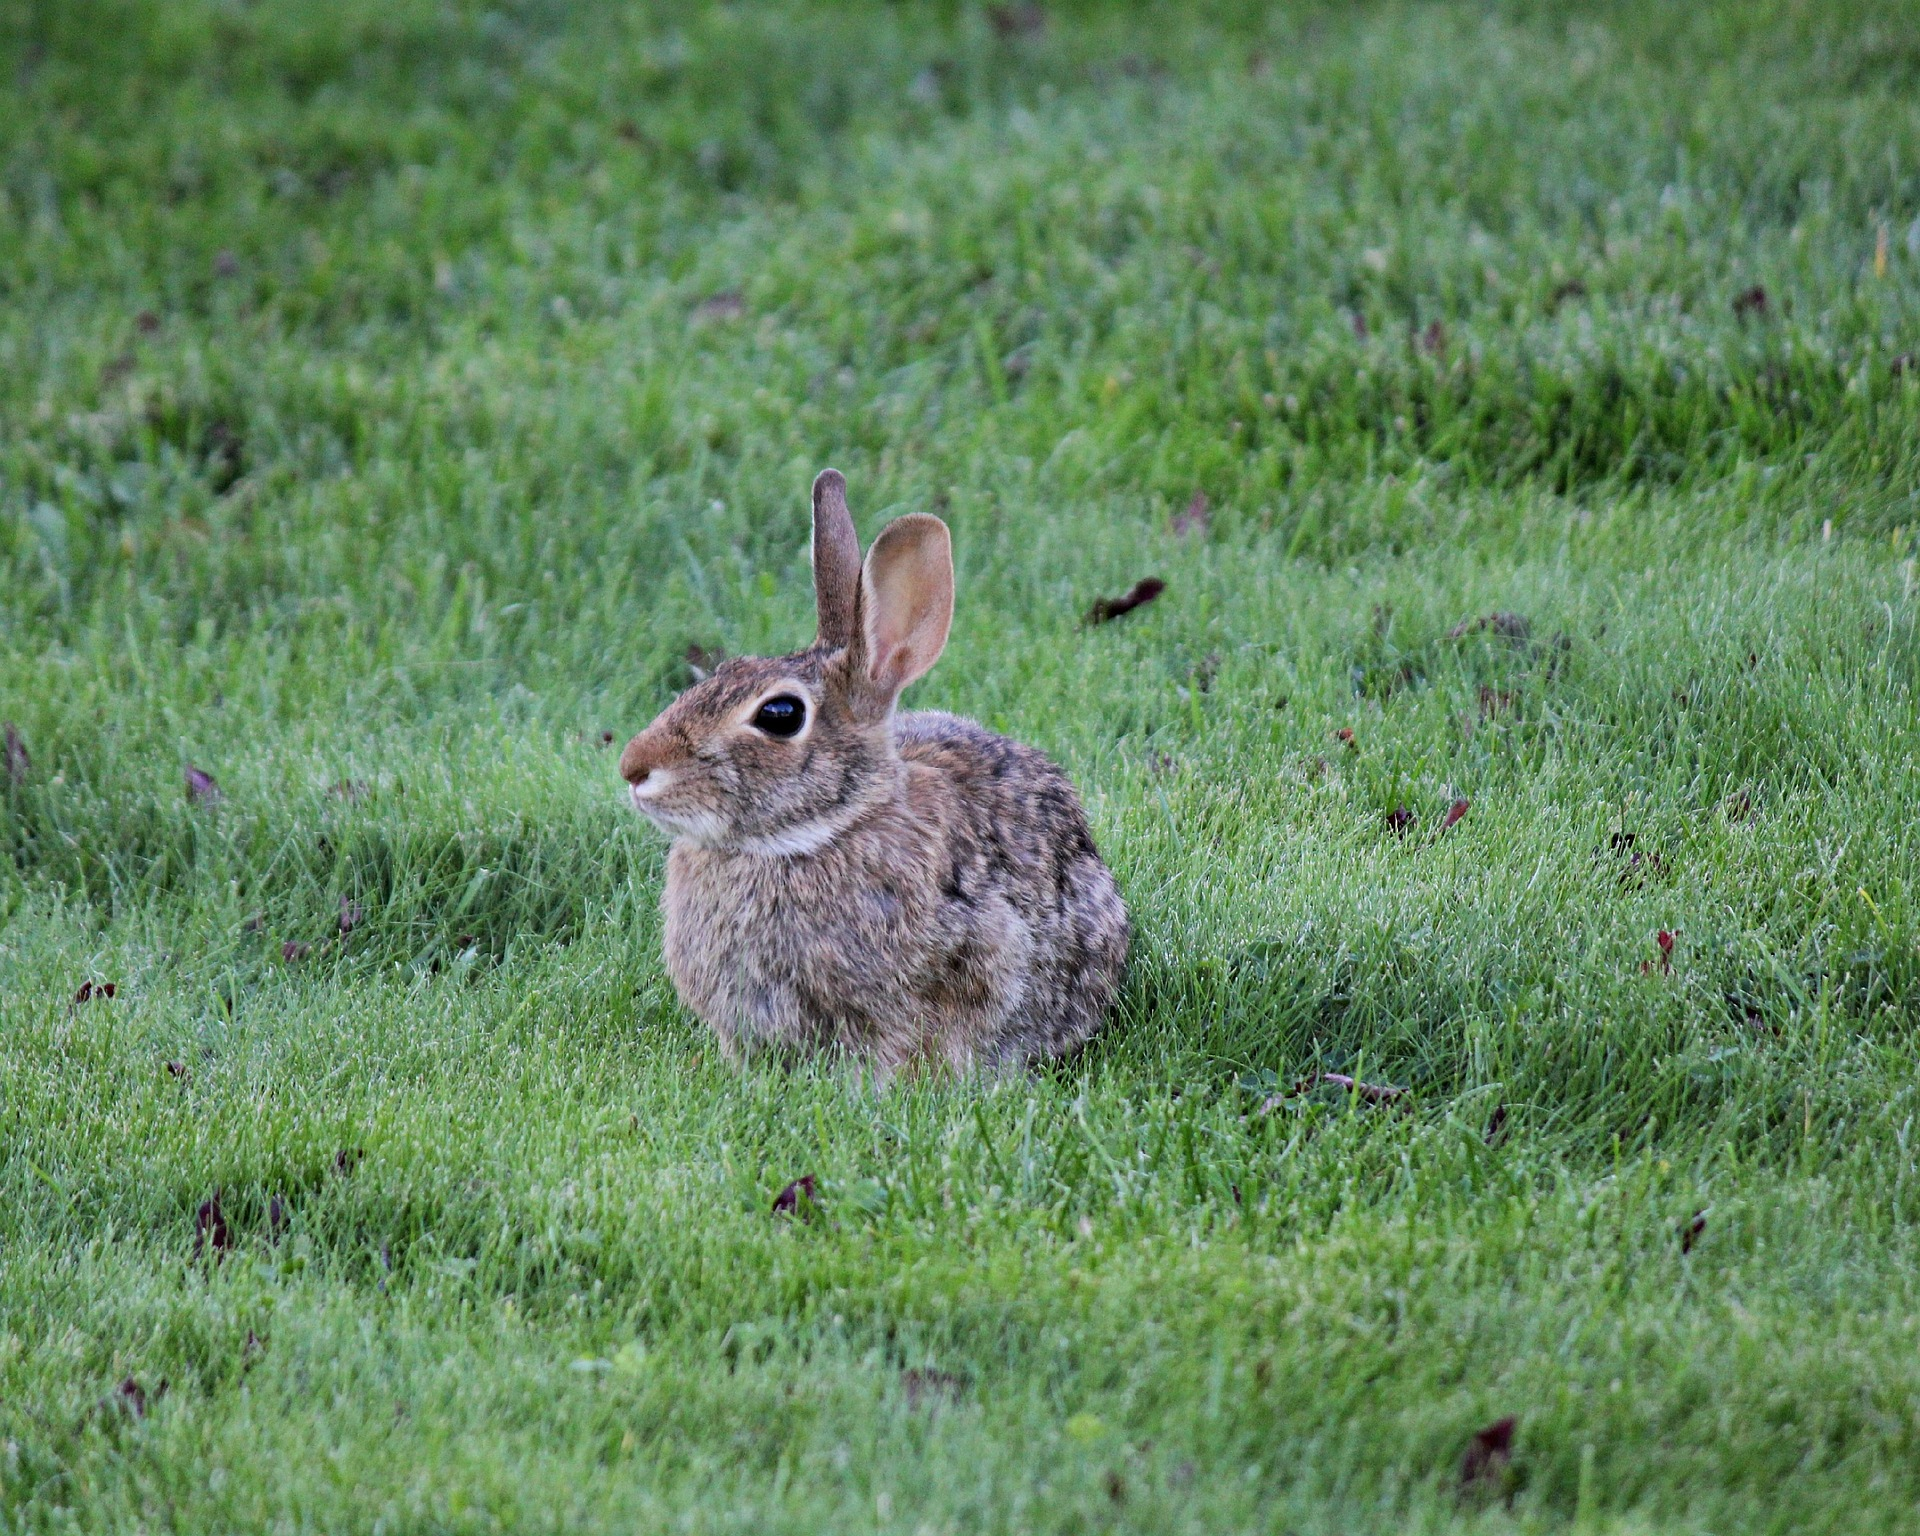 rabbits how to identify and get rid of rabbits garden pest